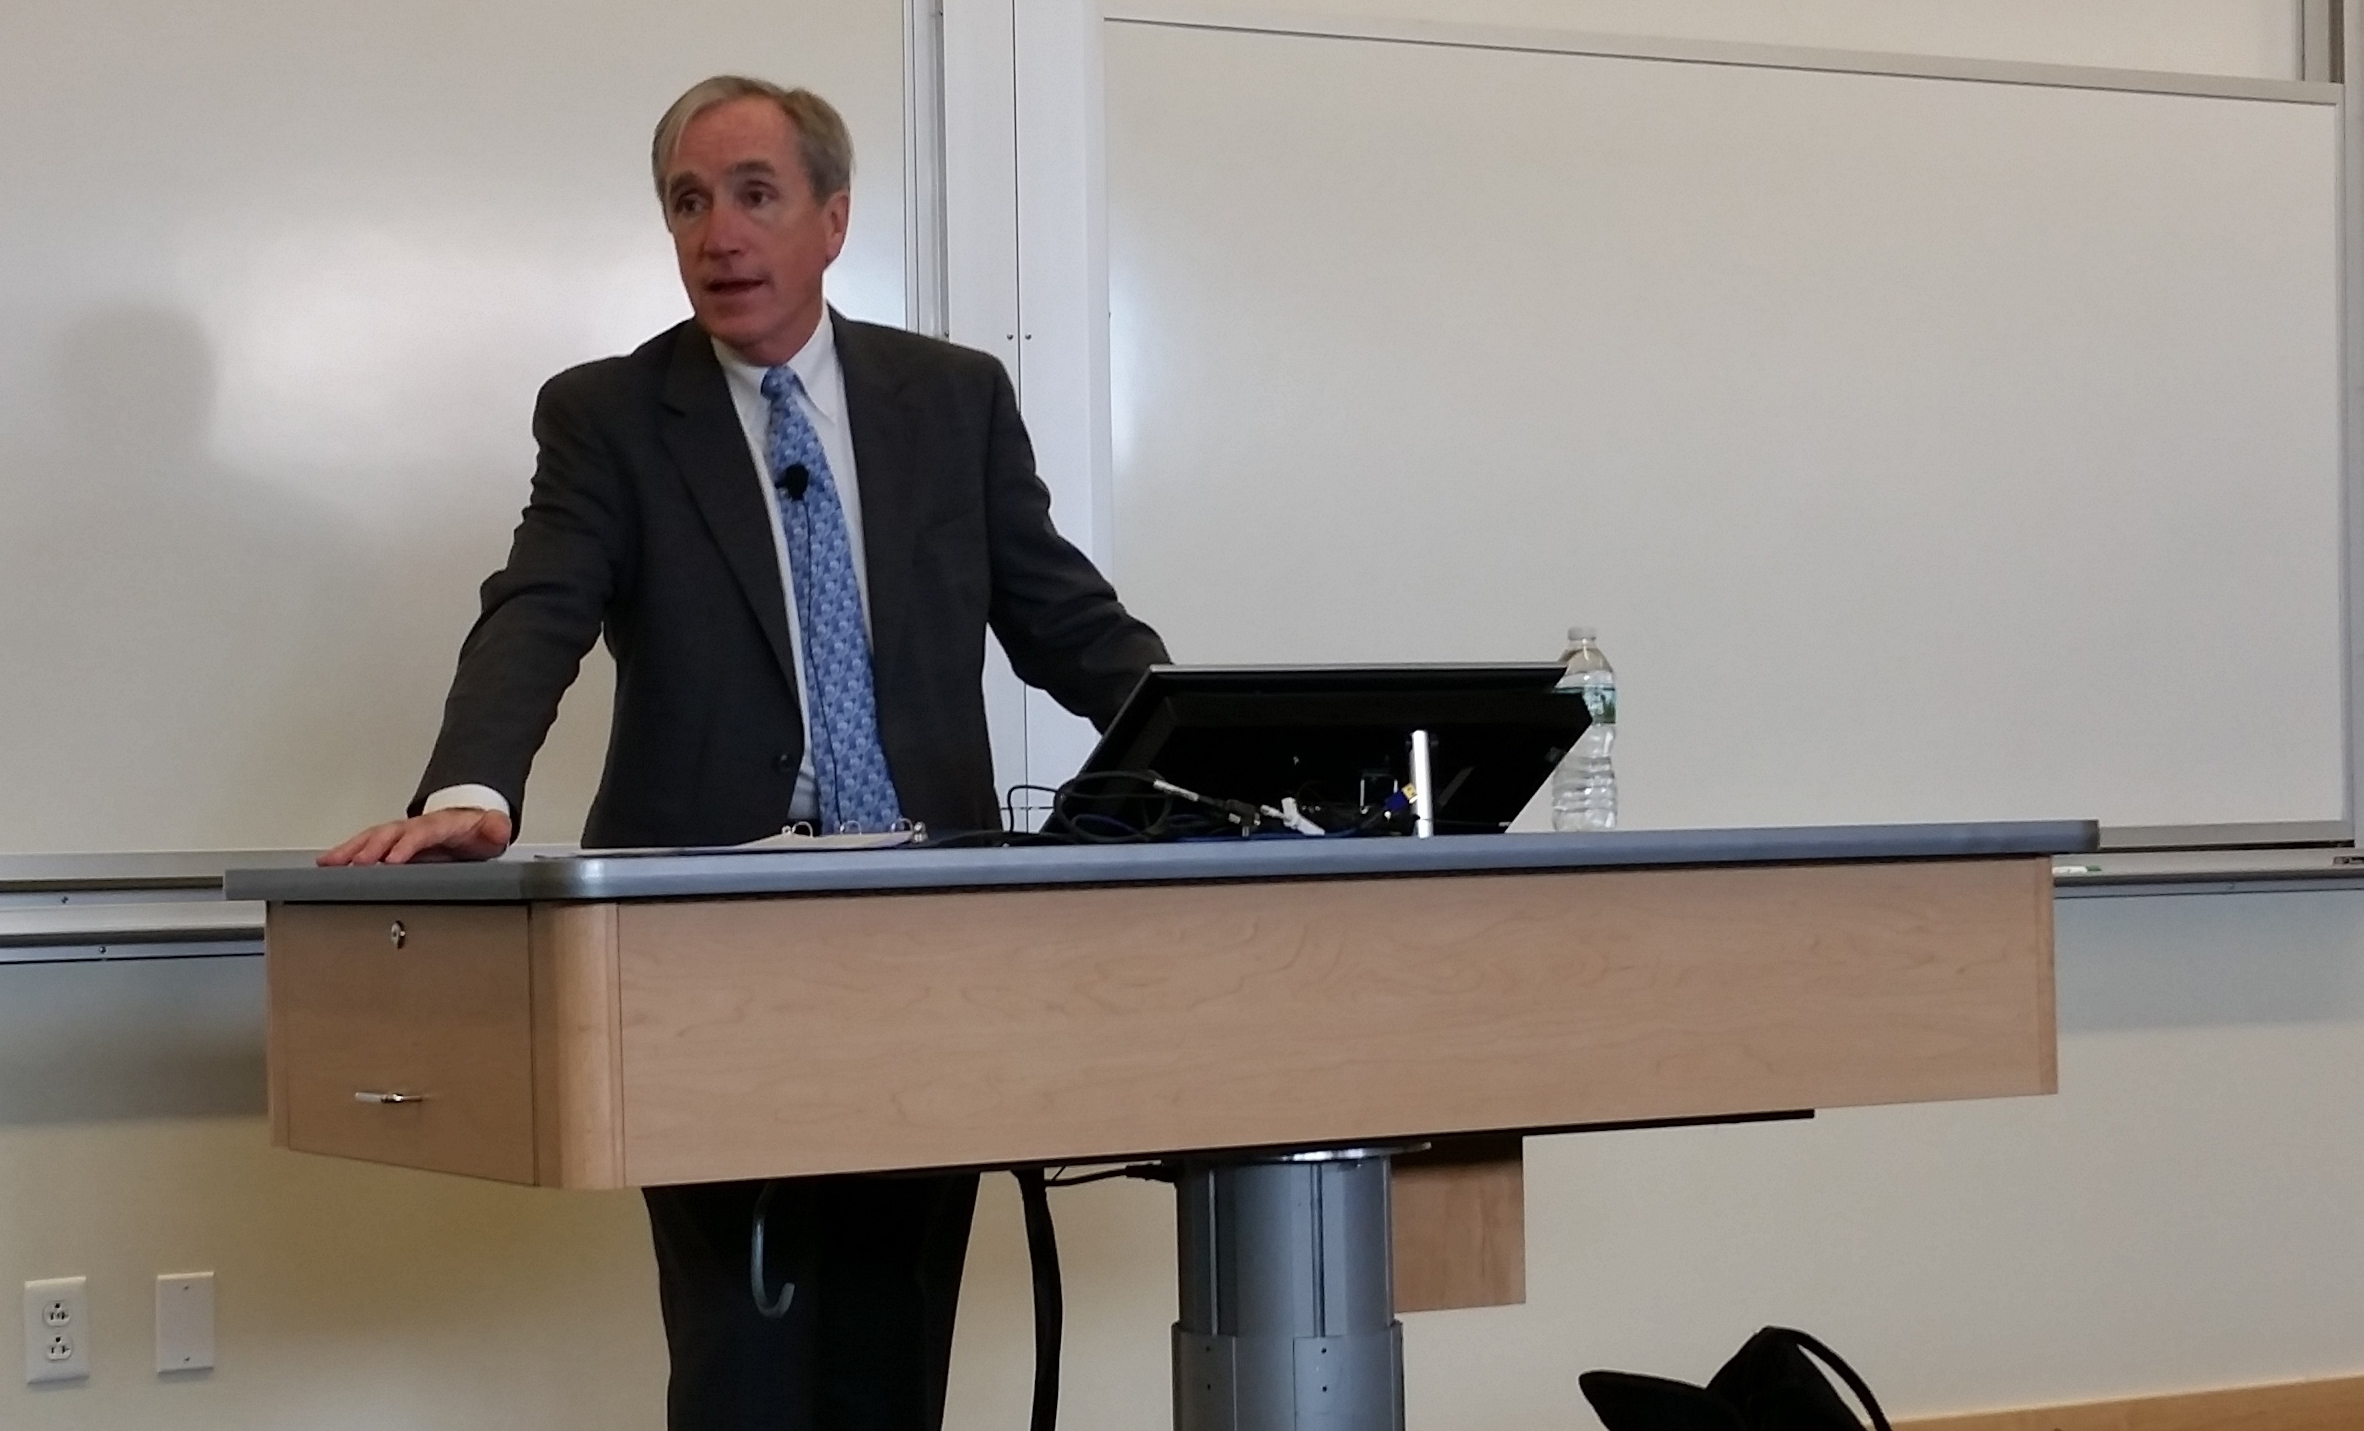 Jack Brennan participates in Distinguished Speaker Series